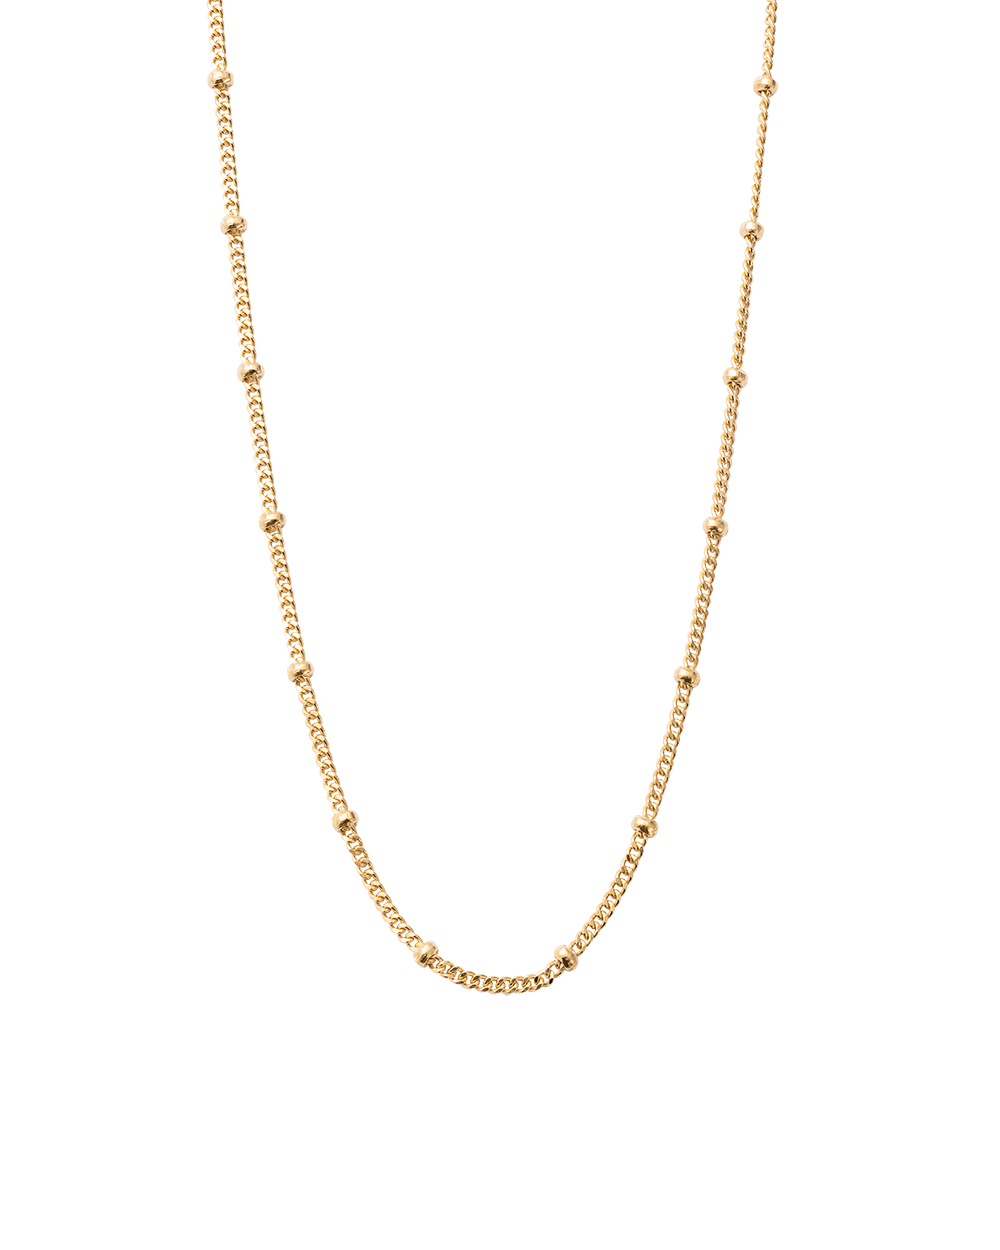 BESPOKE BALL CHAIN (18K-GOLD-VERMEIL)